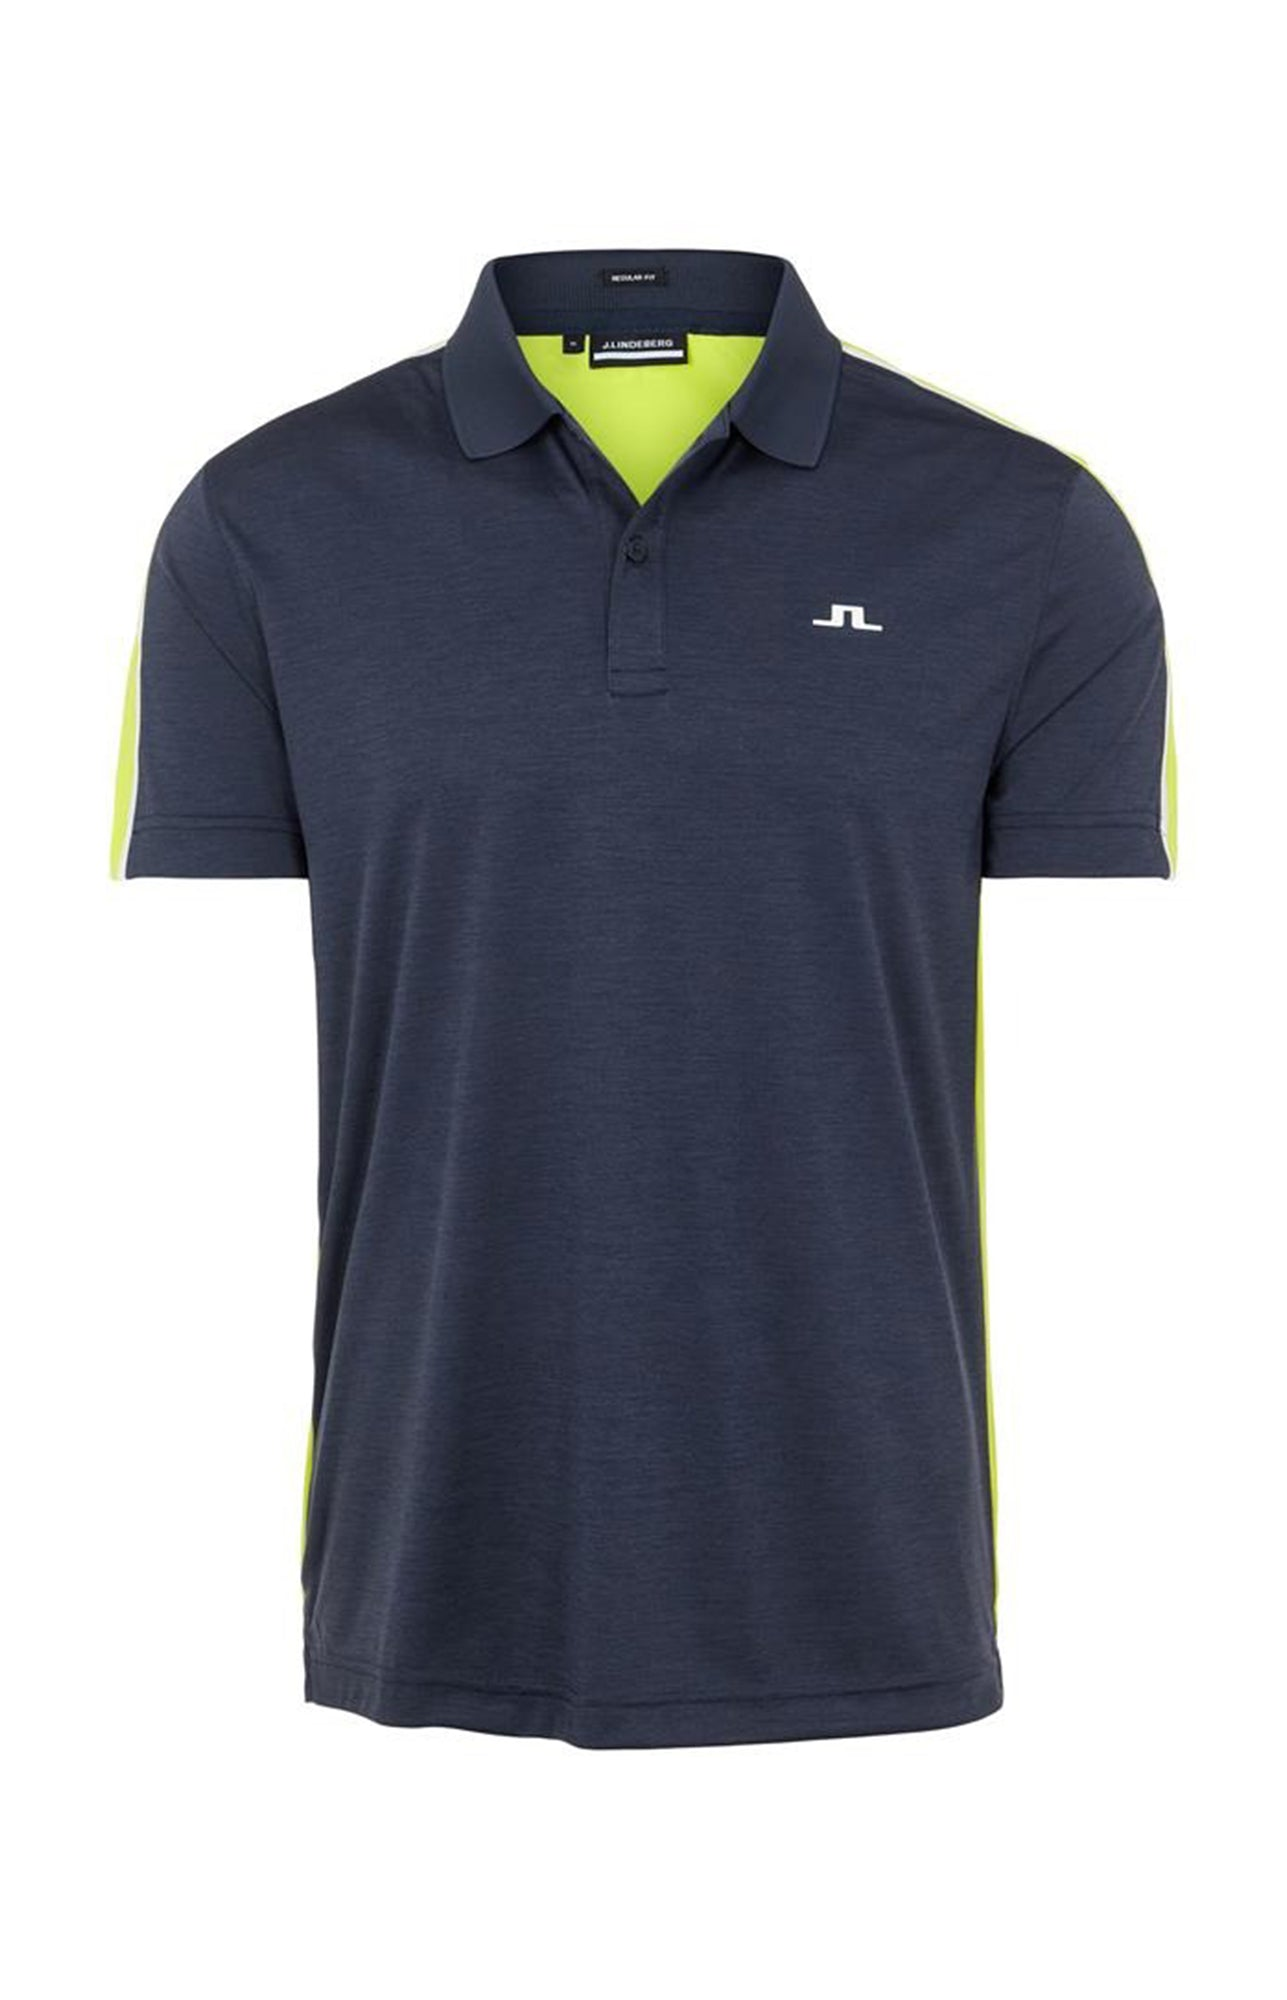 제이린드버그 플린 레귤러 핏 폴로 J Lindeberg Flinn Regular Fit Golf Polo - Leaf Yellow